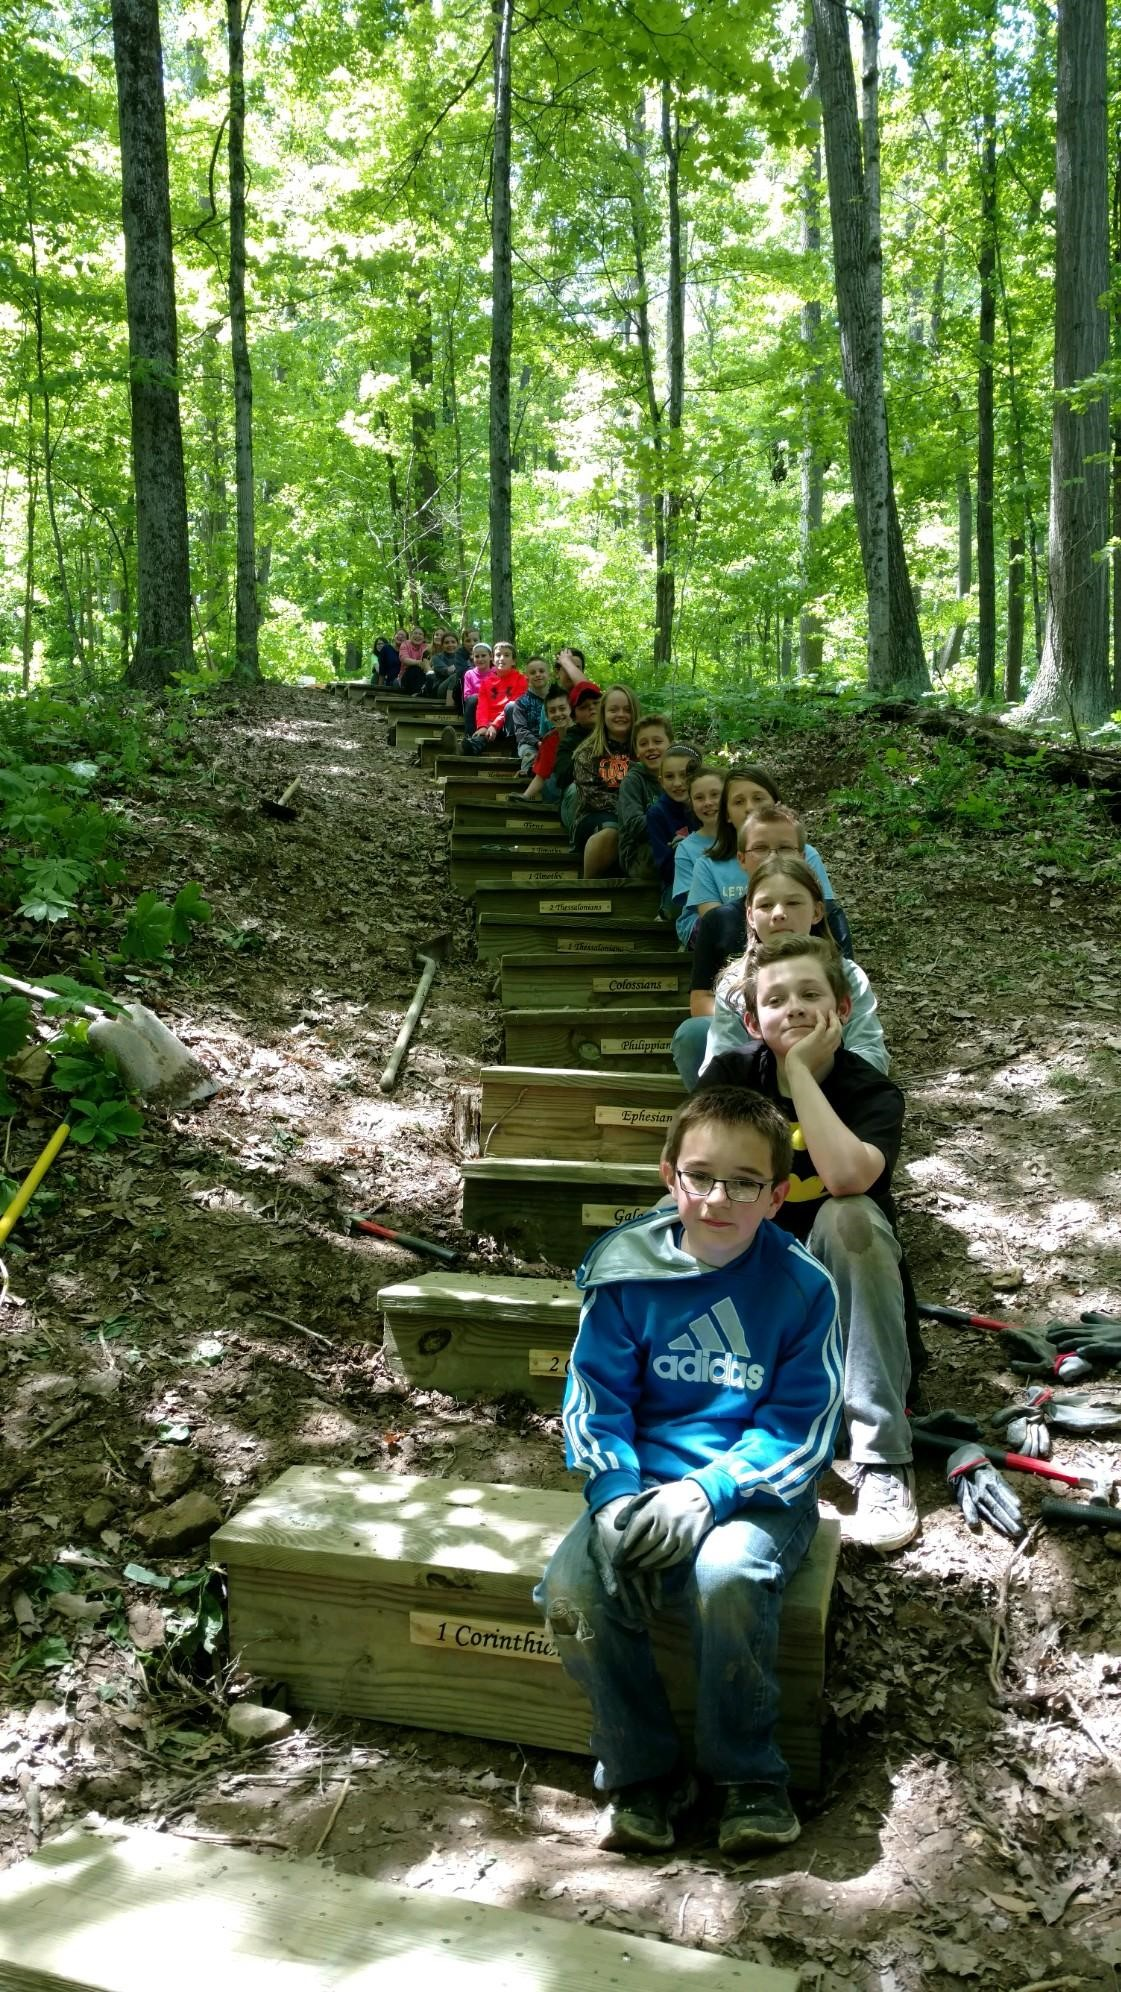 5th grade - great job on the steps!